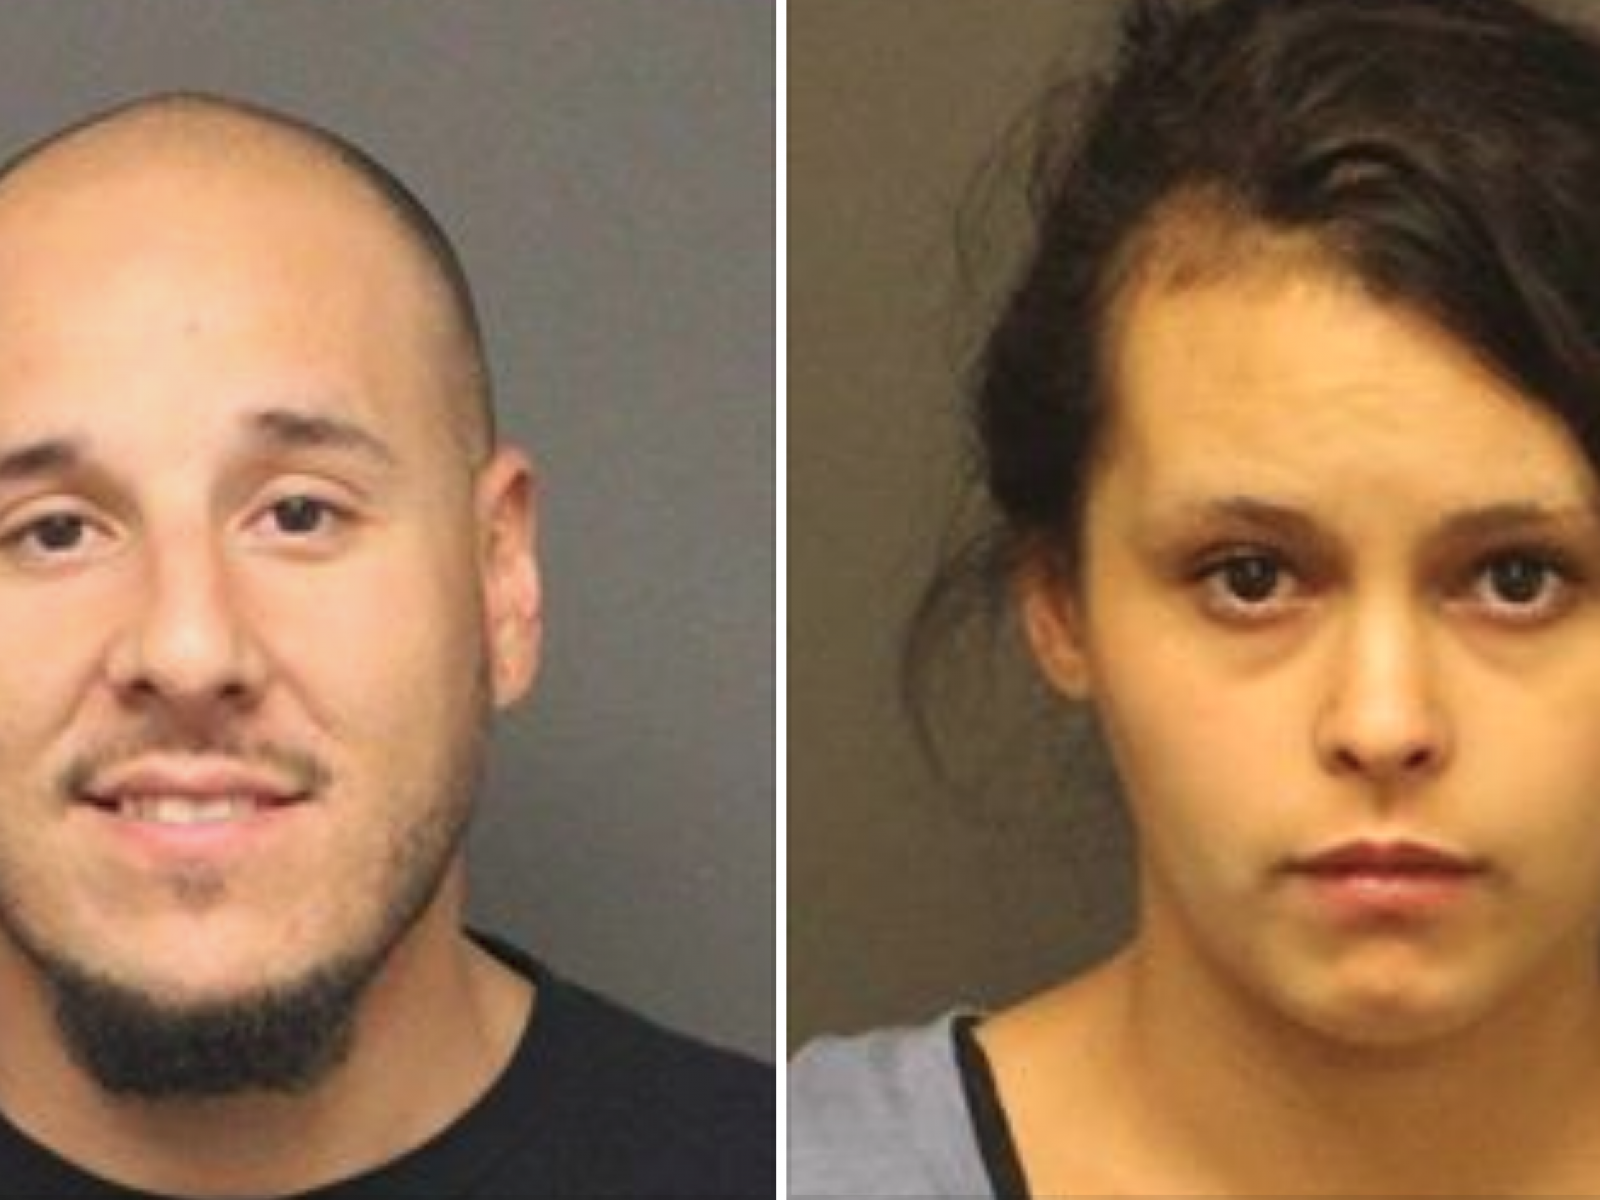 Arizona Woman and Boyfriend Arrested After Mother's Body